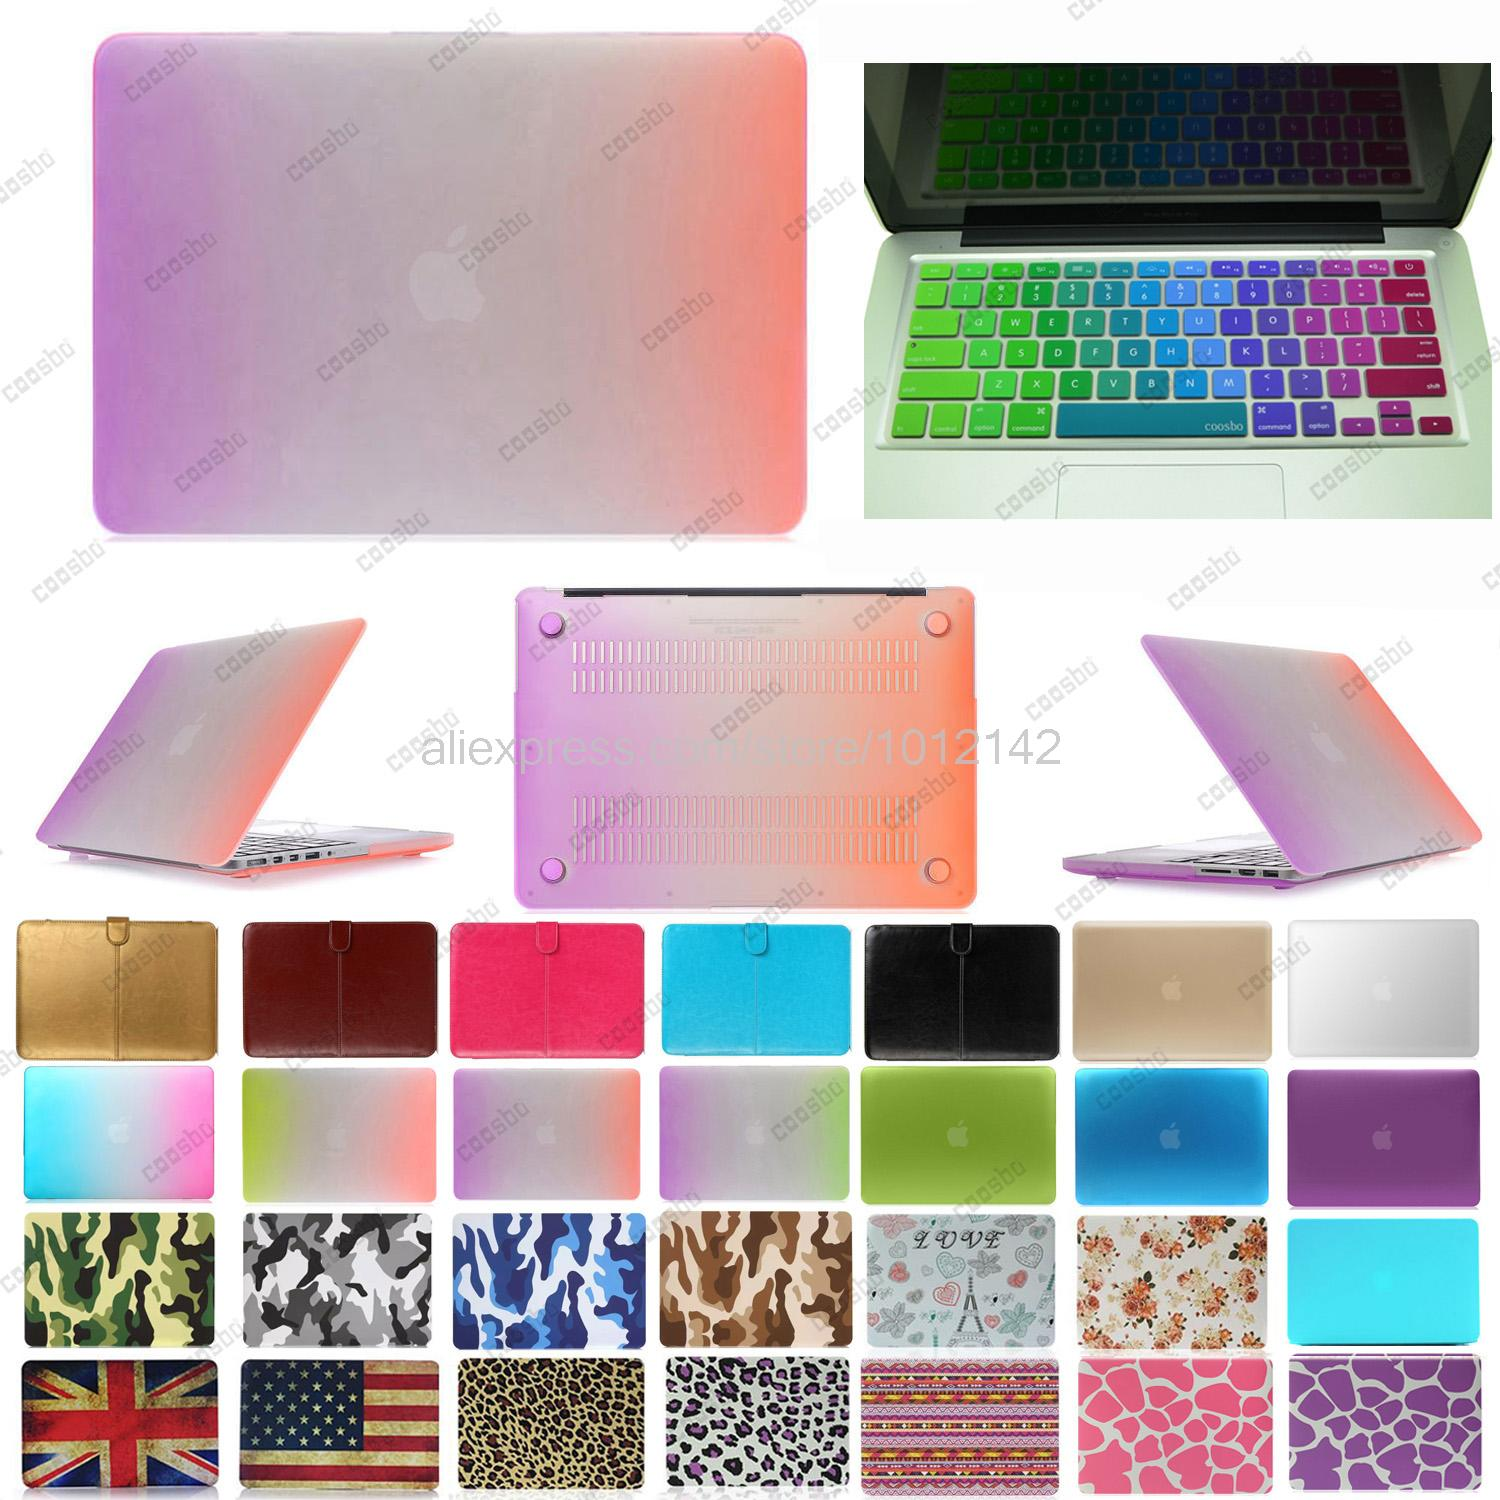 "2in1 freeship colorful Hard shell Case Cover protector For mac Macbook Air Pro Retina 13"" 15"" + Norway Norwegian Keyboard Skin(China (Mainland))"